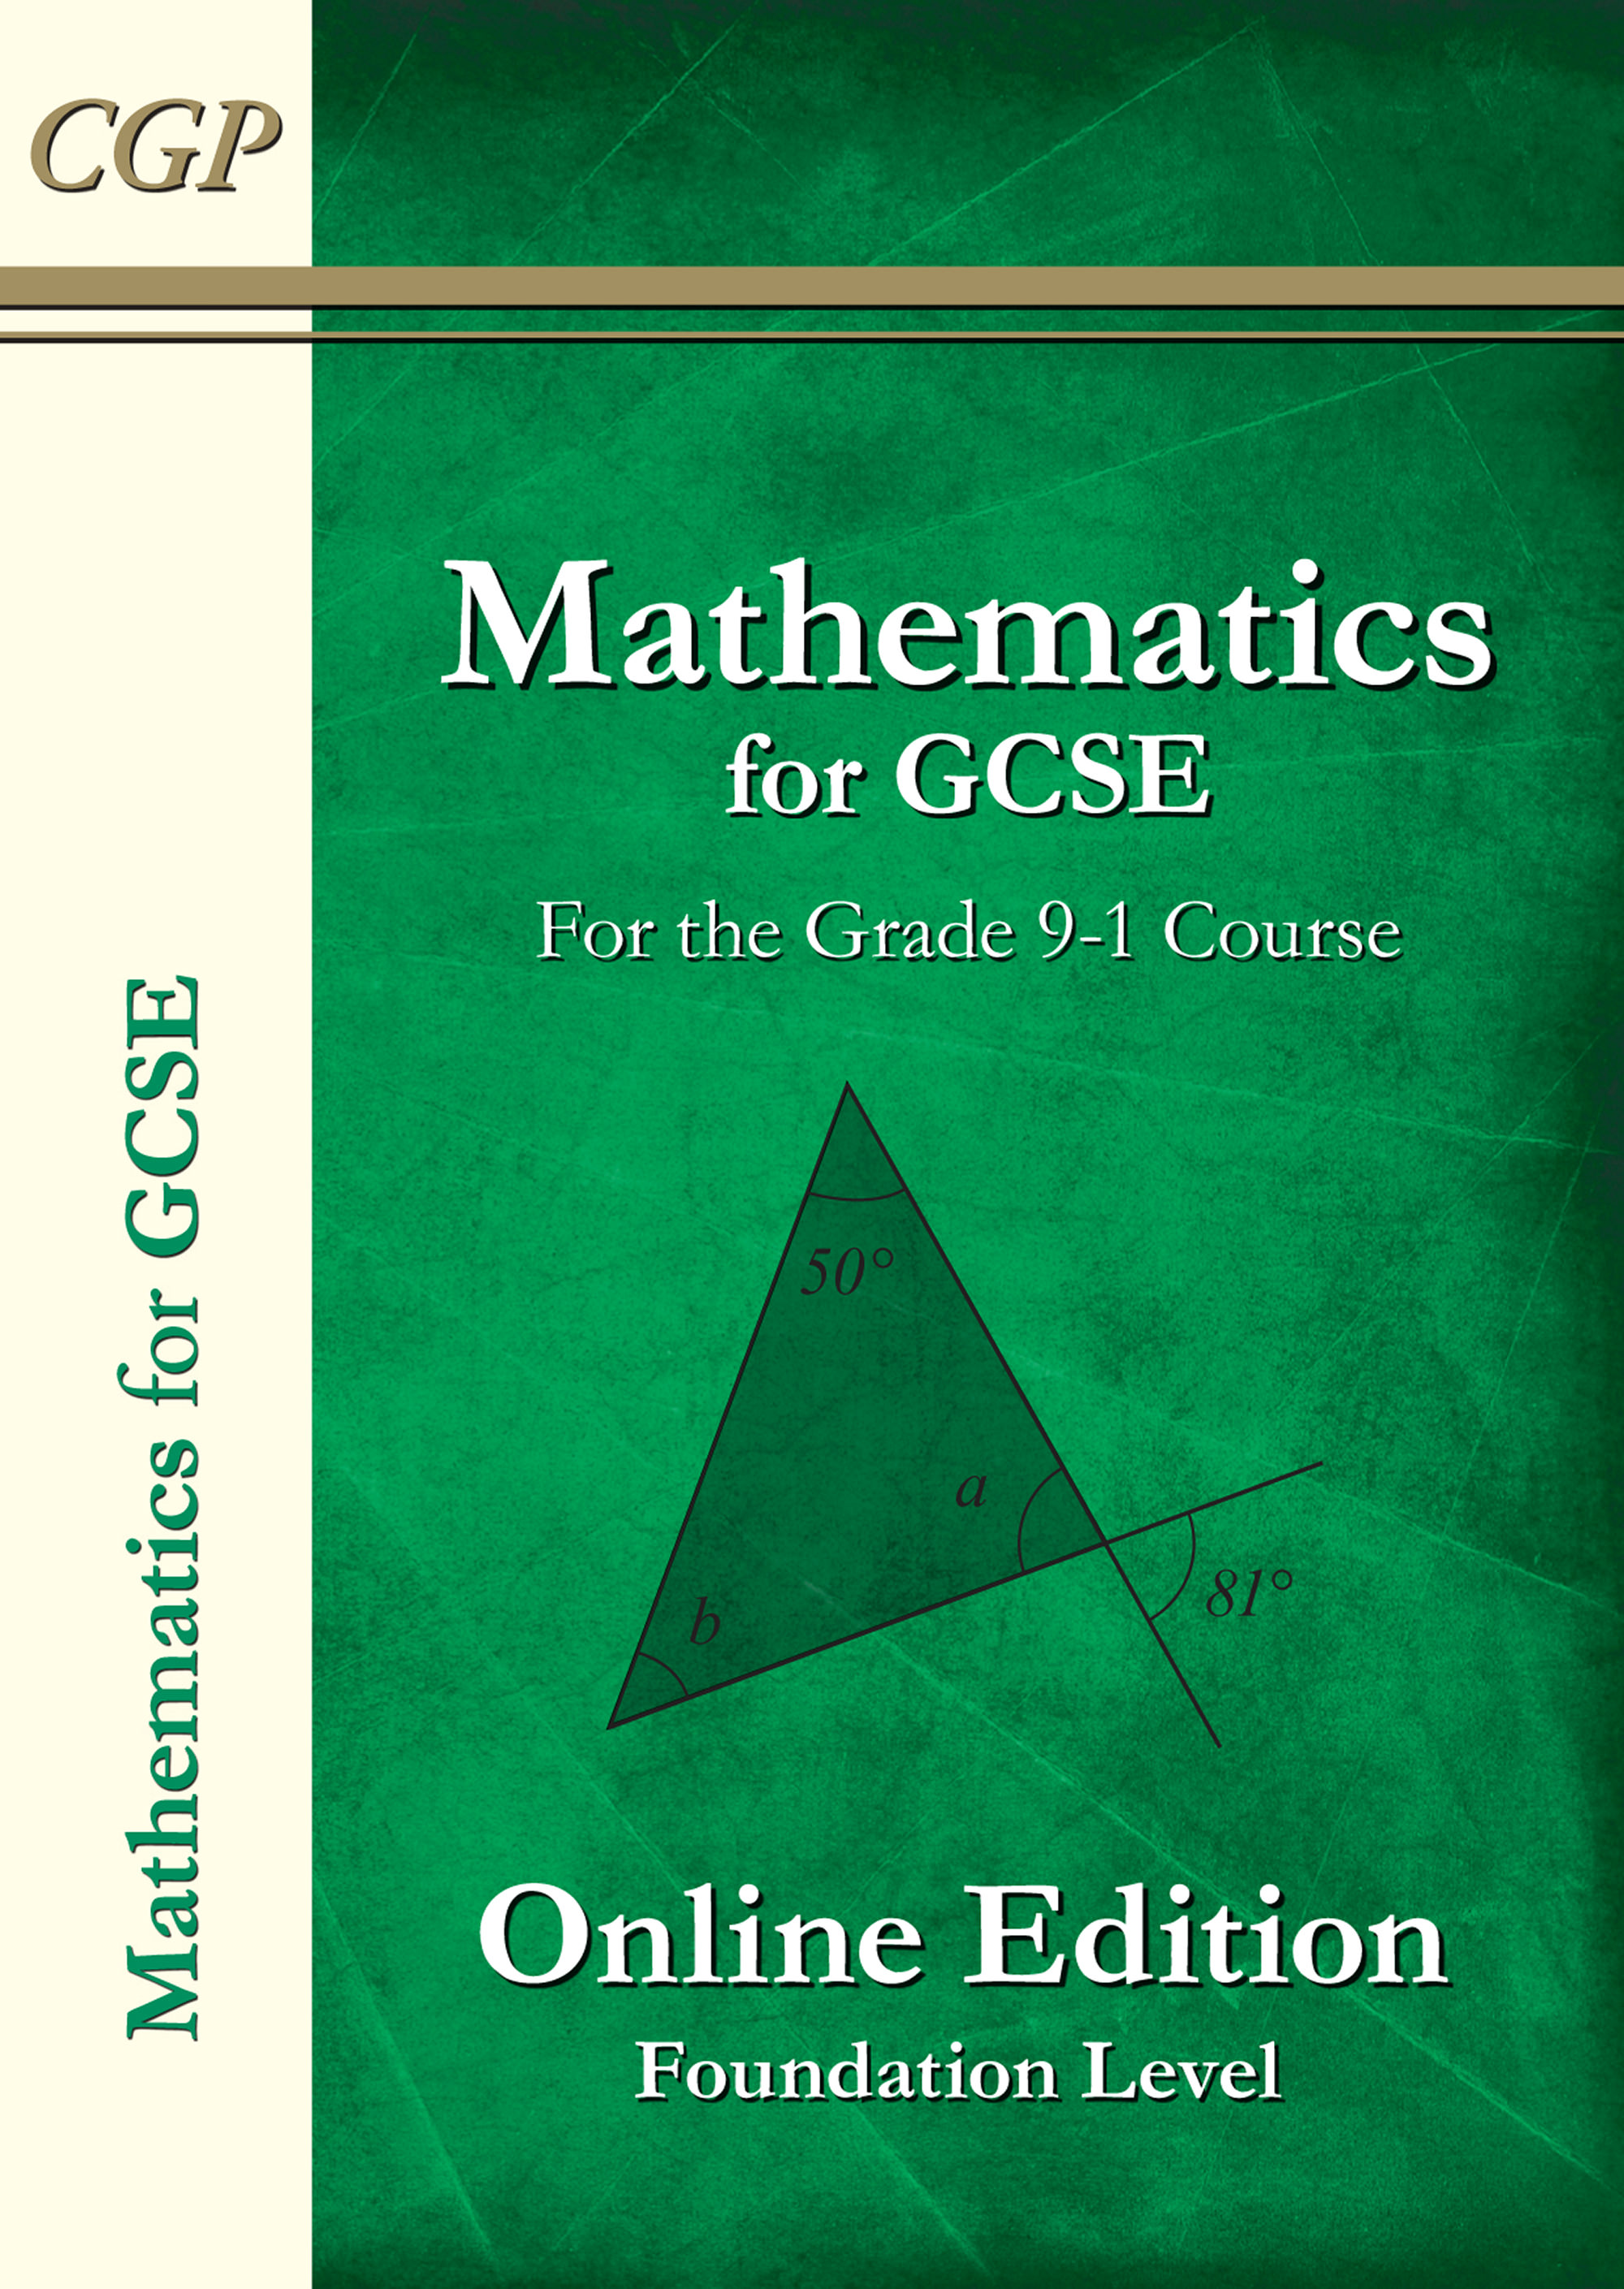 MFN42G - Maths for GCSE Textbook: Online Edition with answers - Foundation (for the Grade 9-1 Course